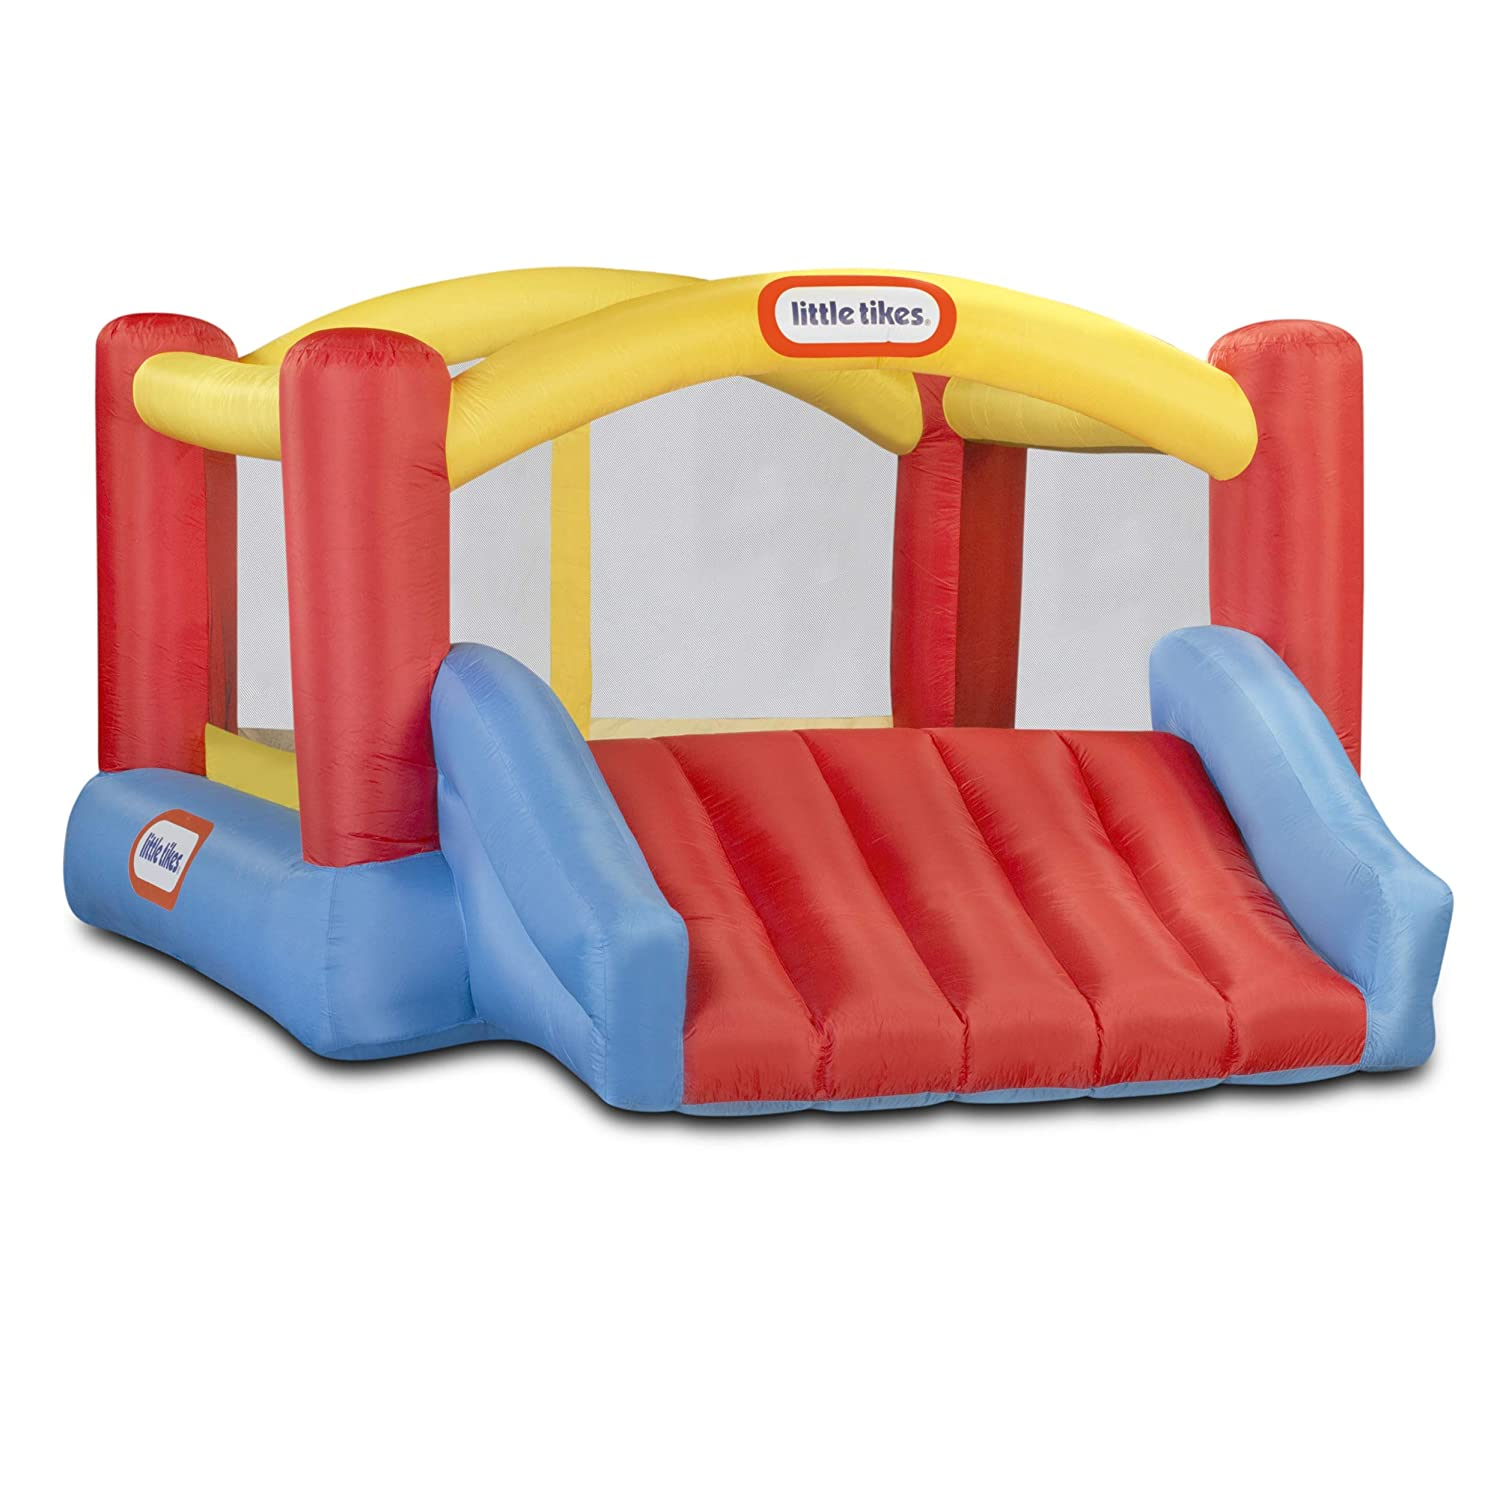 Little Tikes Inflatable Jump 'n Slide Bounce House w/heavy duty blower best backyard playset